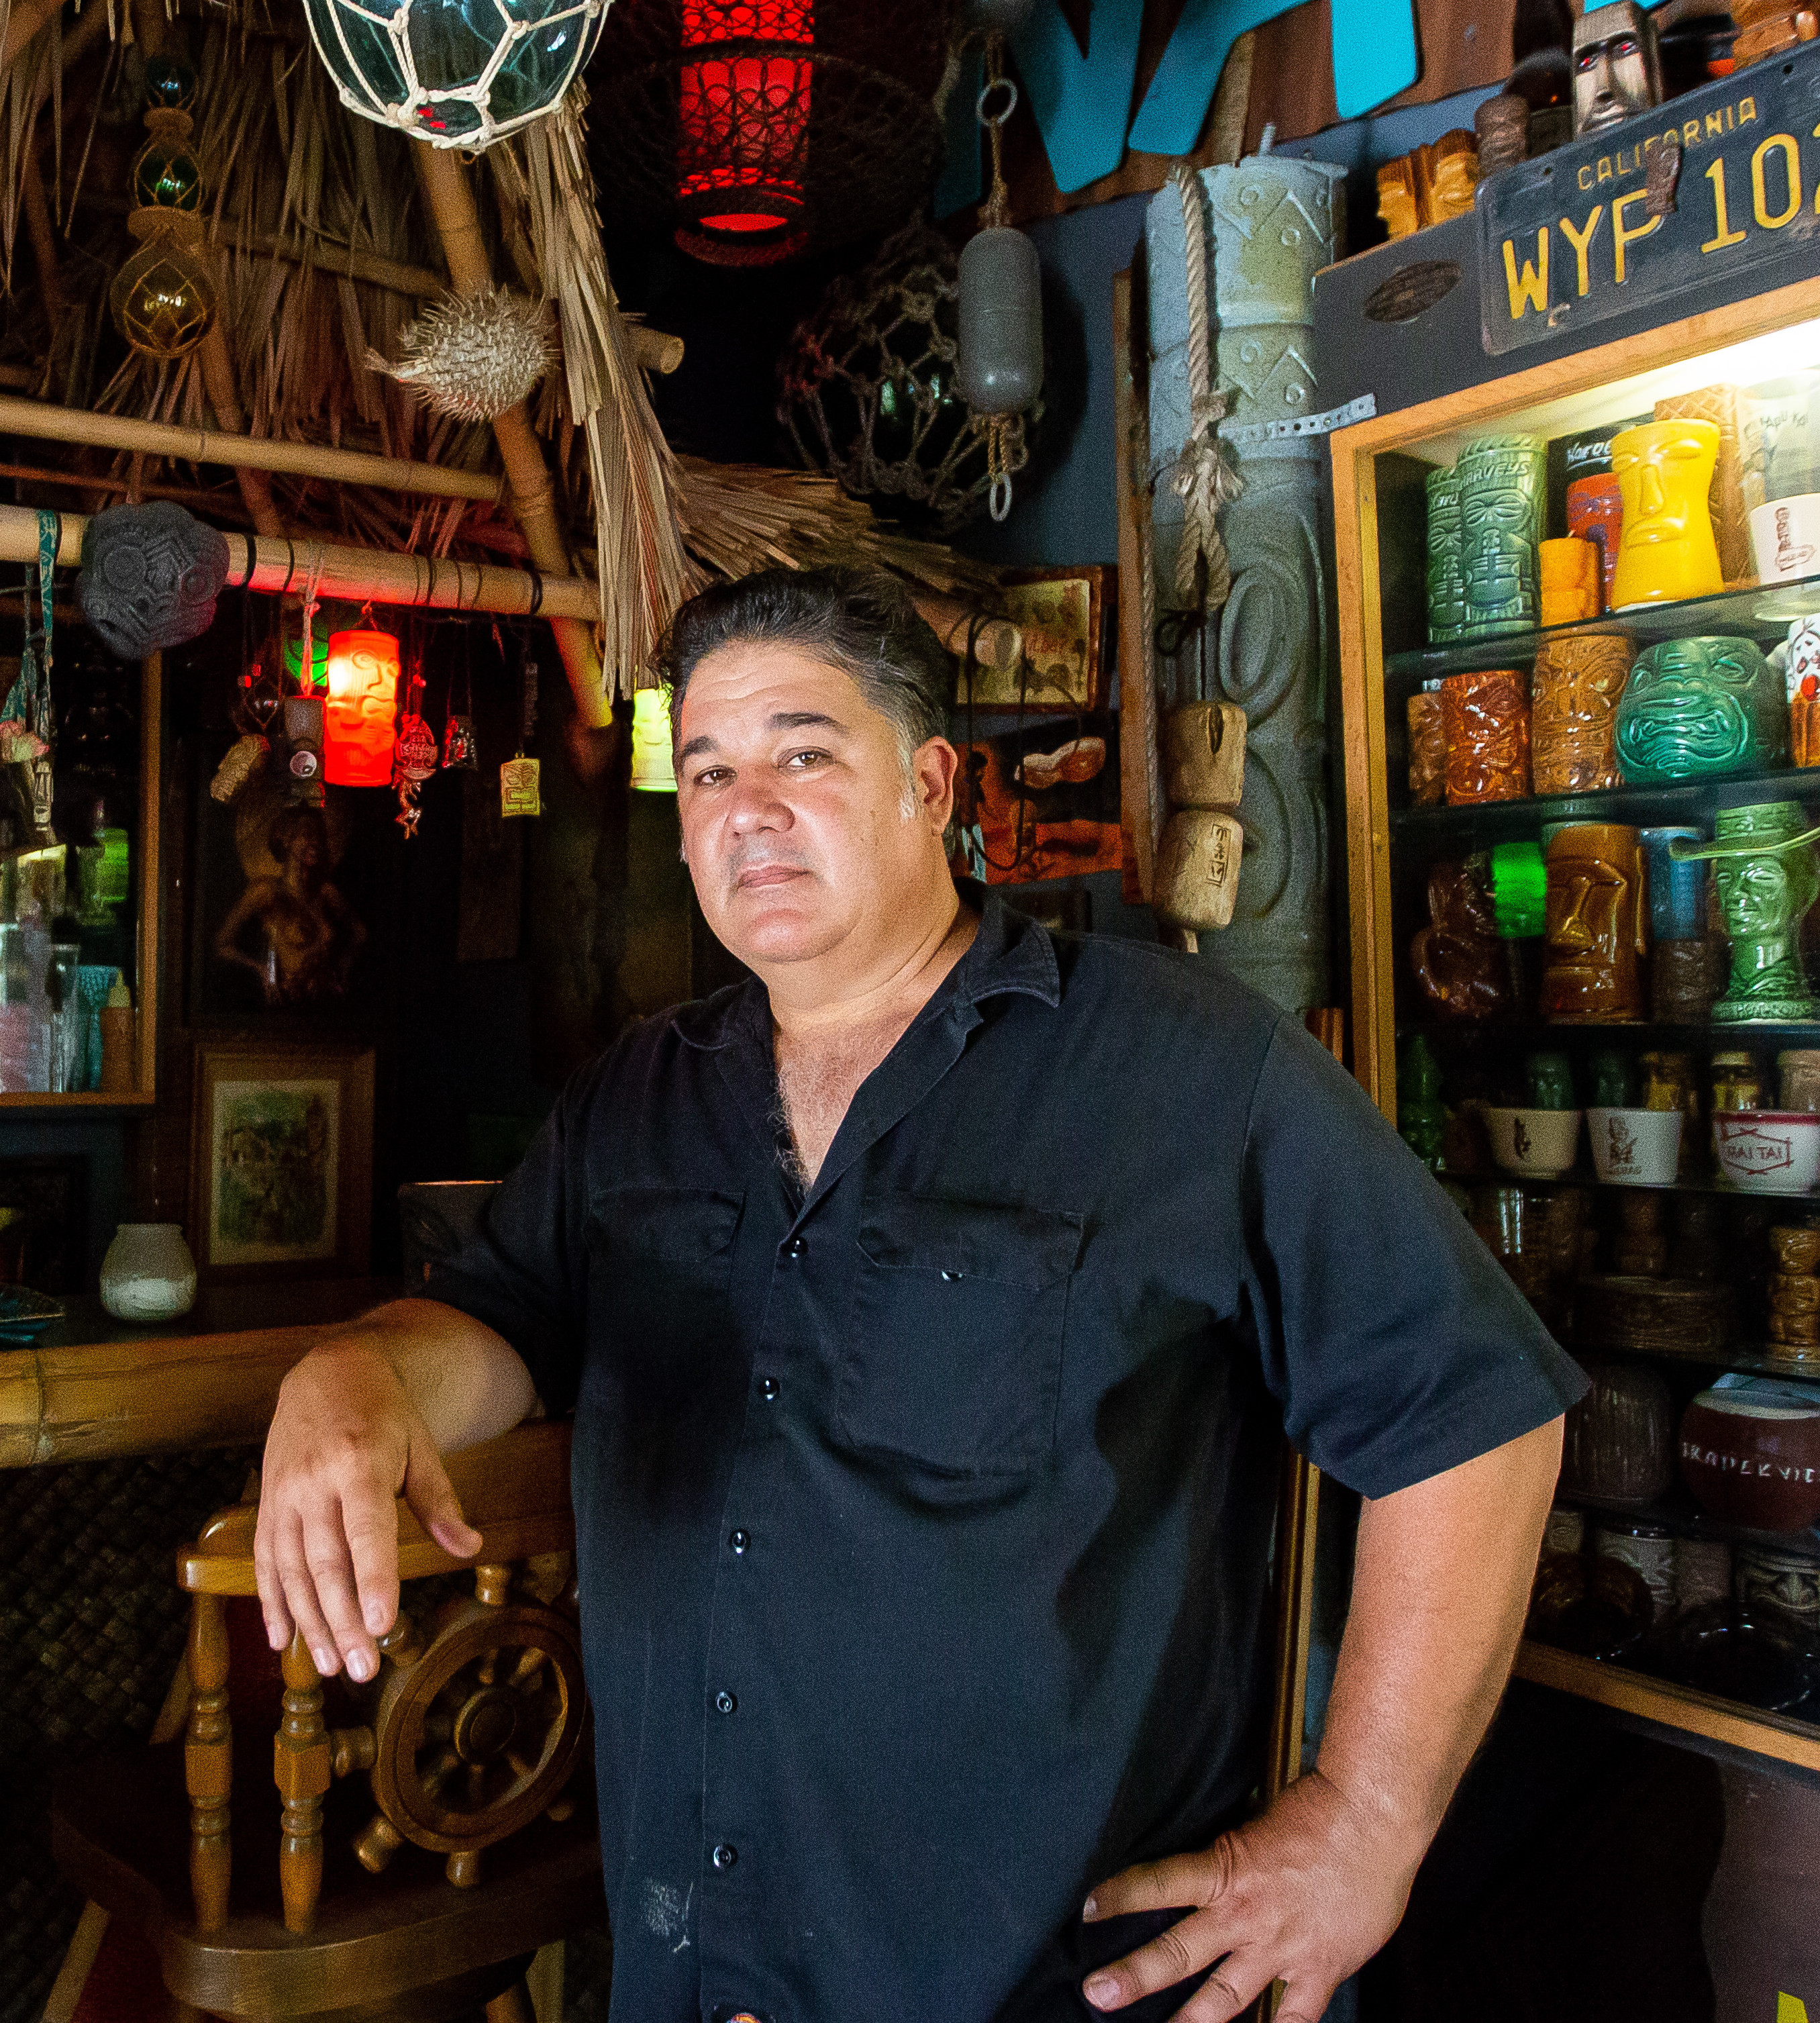 Meet the Escondido artist who revived the tiki movement